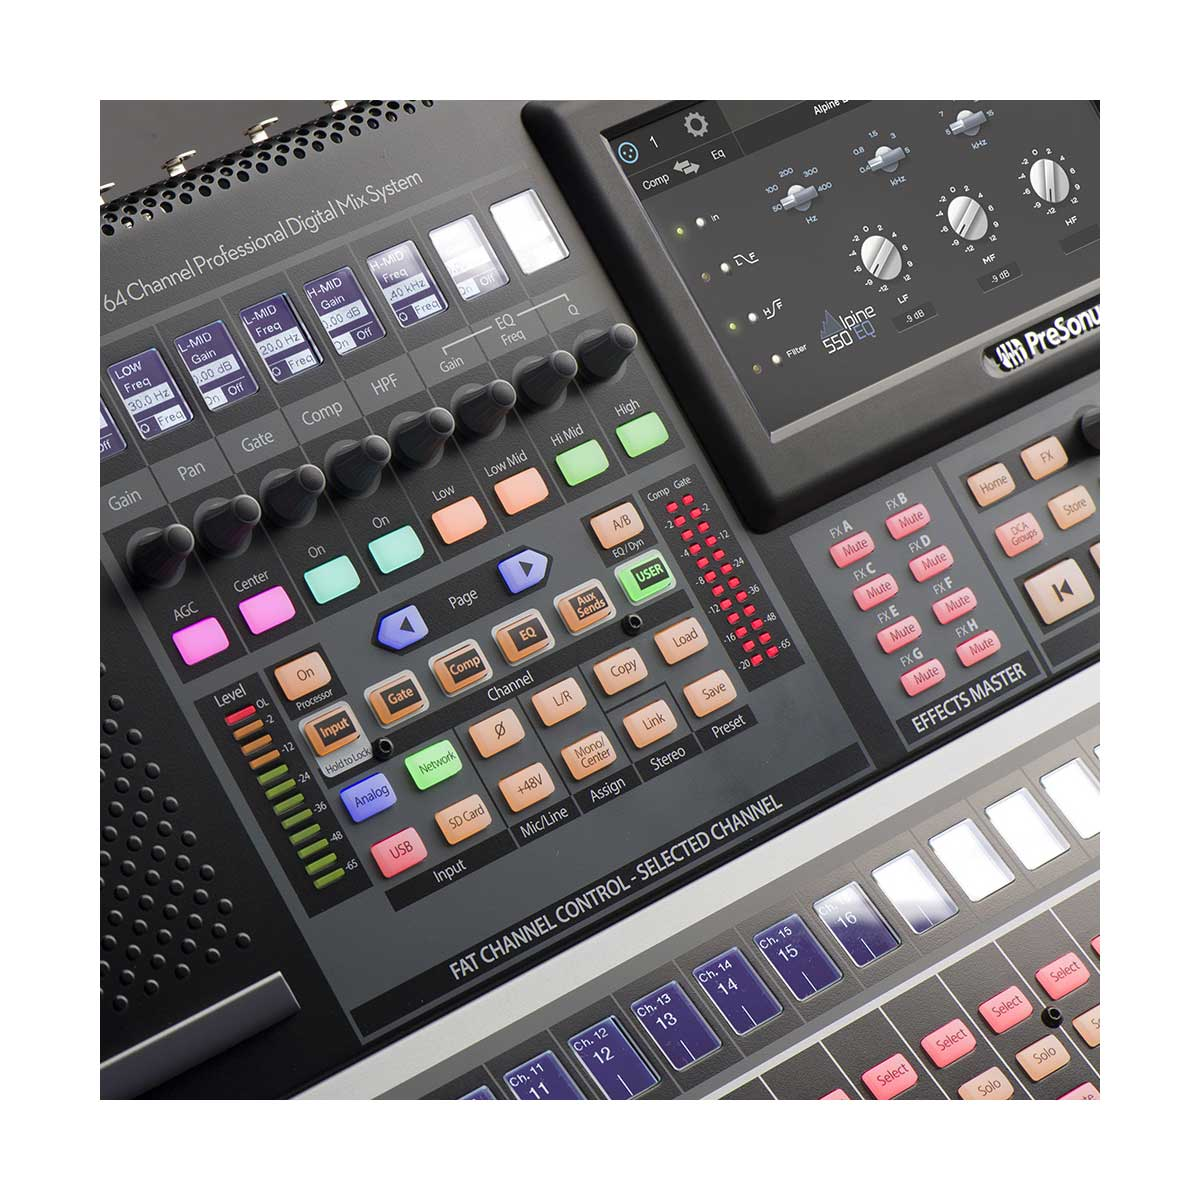 presonus studiolive 64s 64 channel digital mixer and usb audio interfa sounds easy. Black Bedroom Furniture Sets. Home Design Ideas